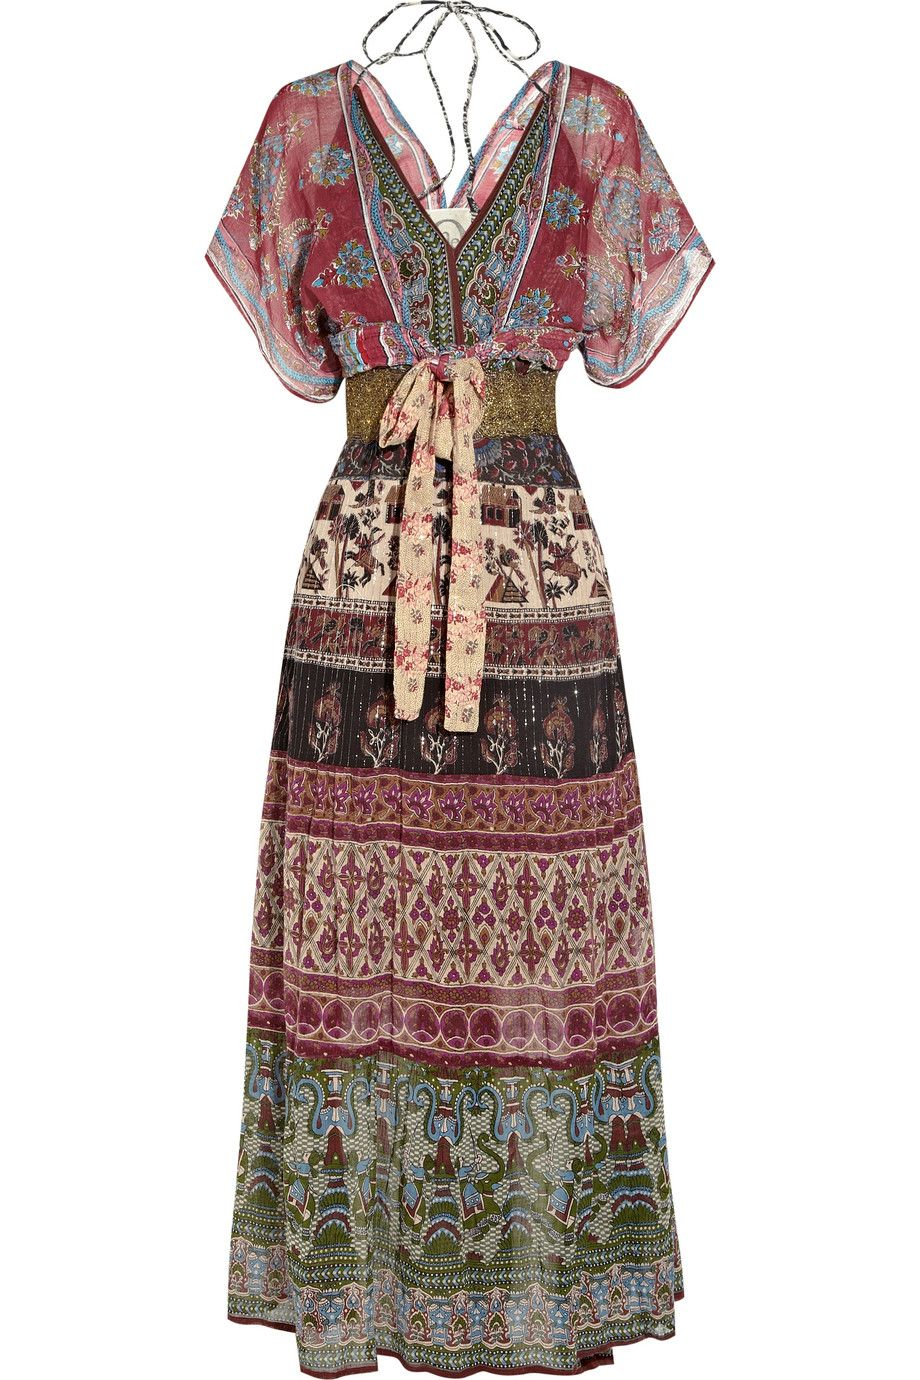 One vintage presents an artisan take on a usstyle maxi dress in